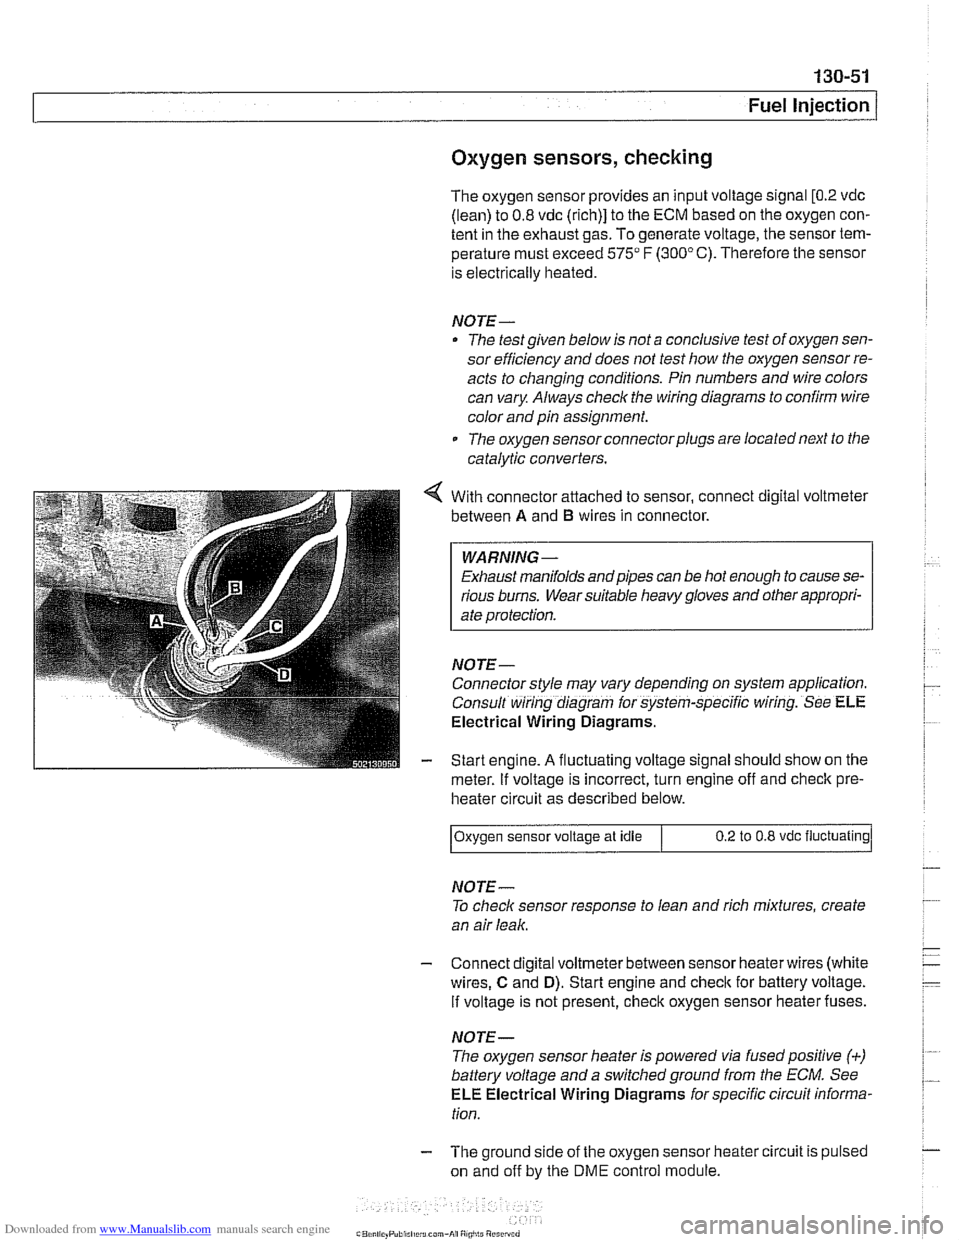 medium resolution of bmw 528i 1998 e39 workshop manual page 441